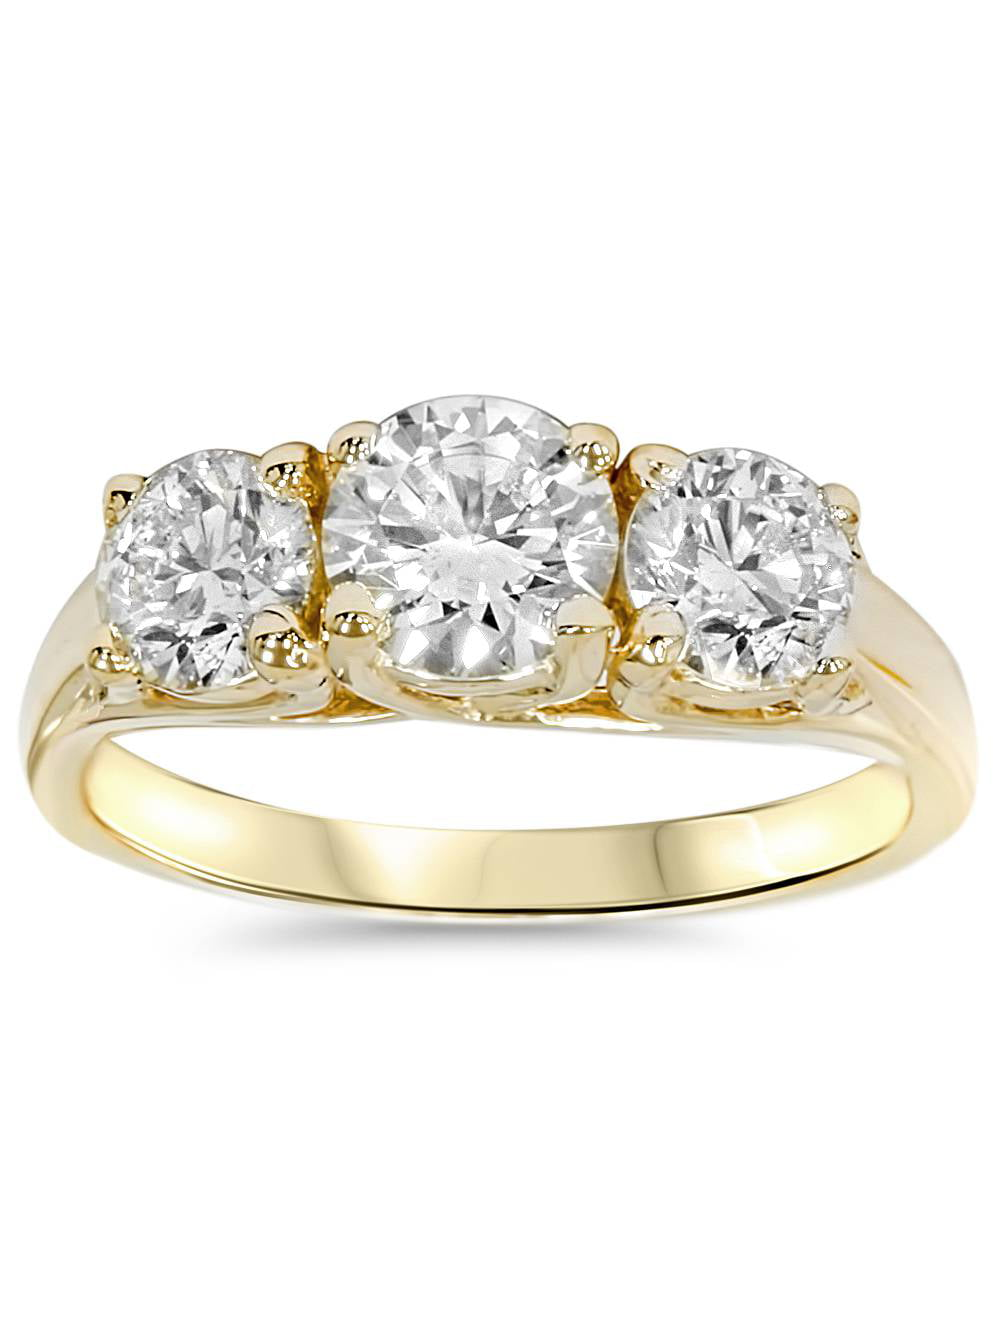 2ct Round Diamond 3-Stone Engagement Ring 14K Yellow Gold Solitaire Round Cut by Pompeii3